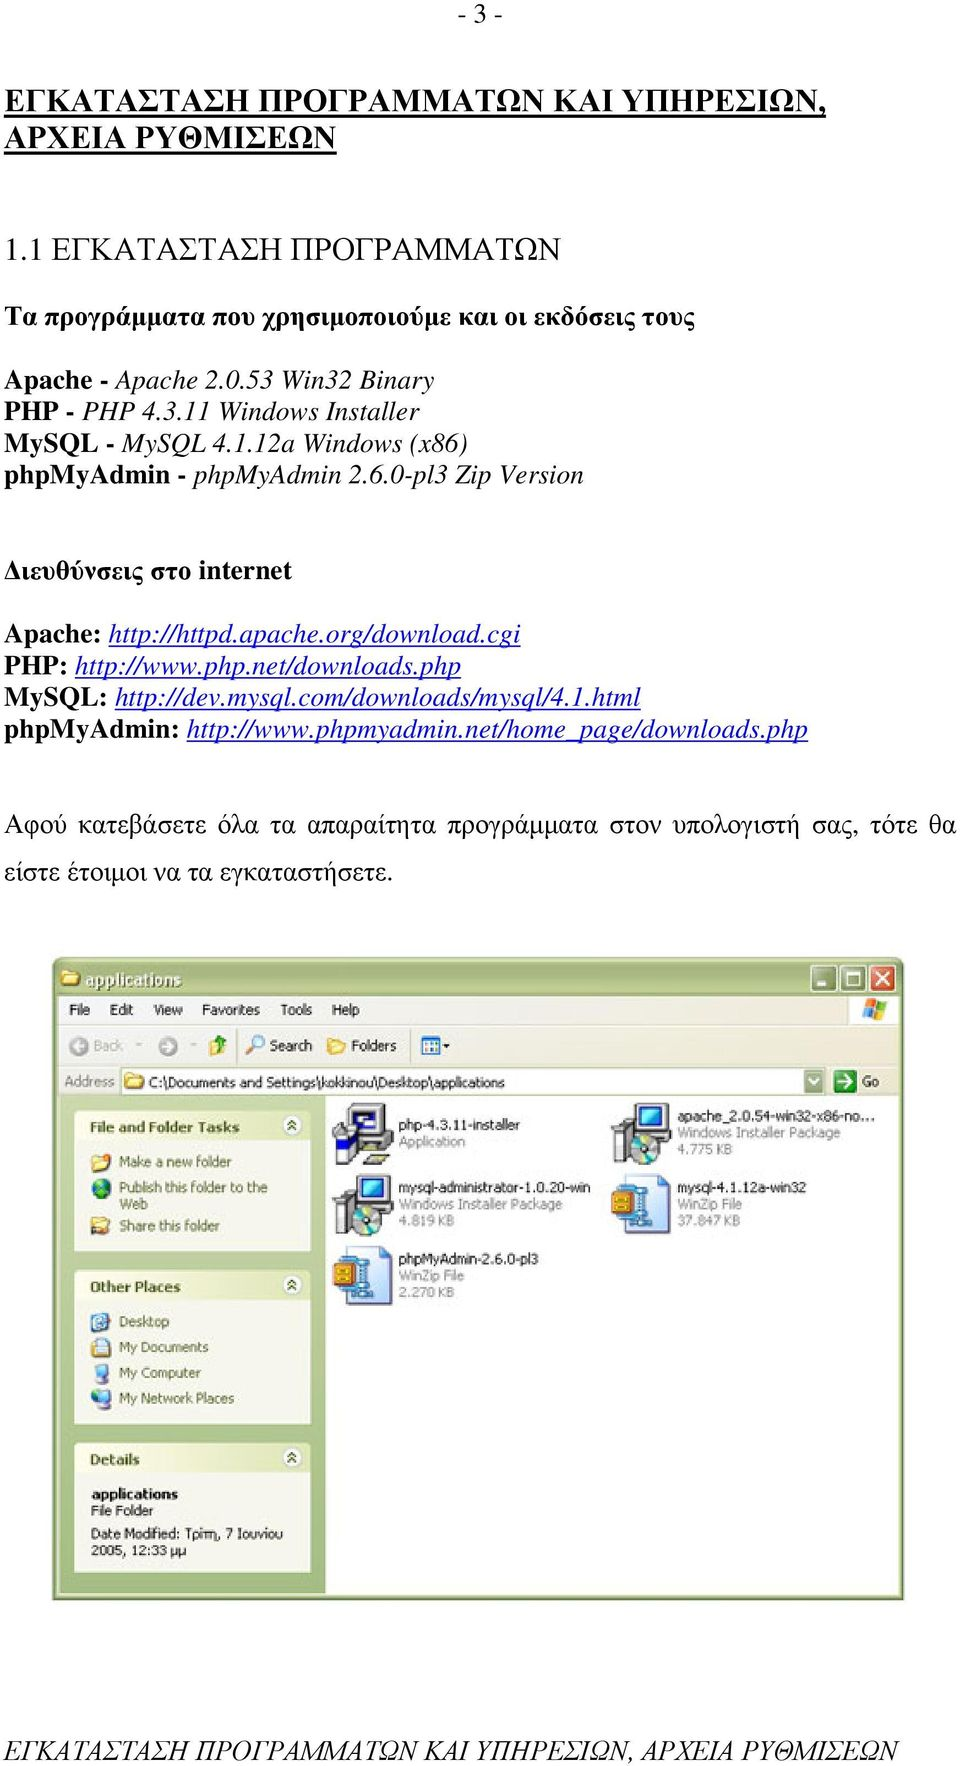 apache.org/download.cgi PHP: http://www.php.net/downloads.php MySQL: http://dev.mysql.com/downloads/mysql/4.1.html phpmyadmin: http://www.phpmyadmin.net/home_page/downloads.